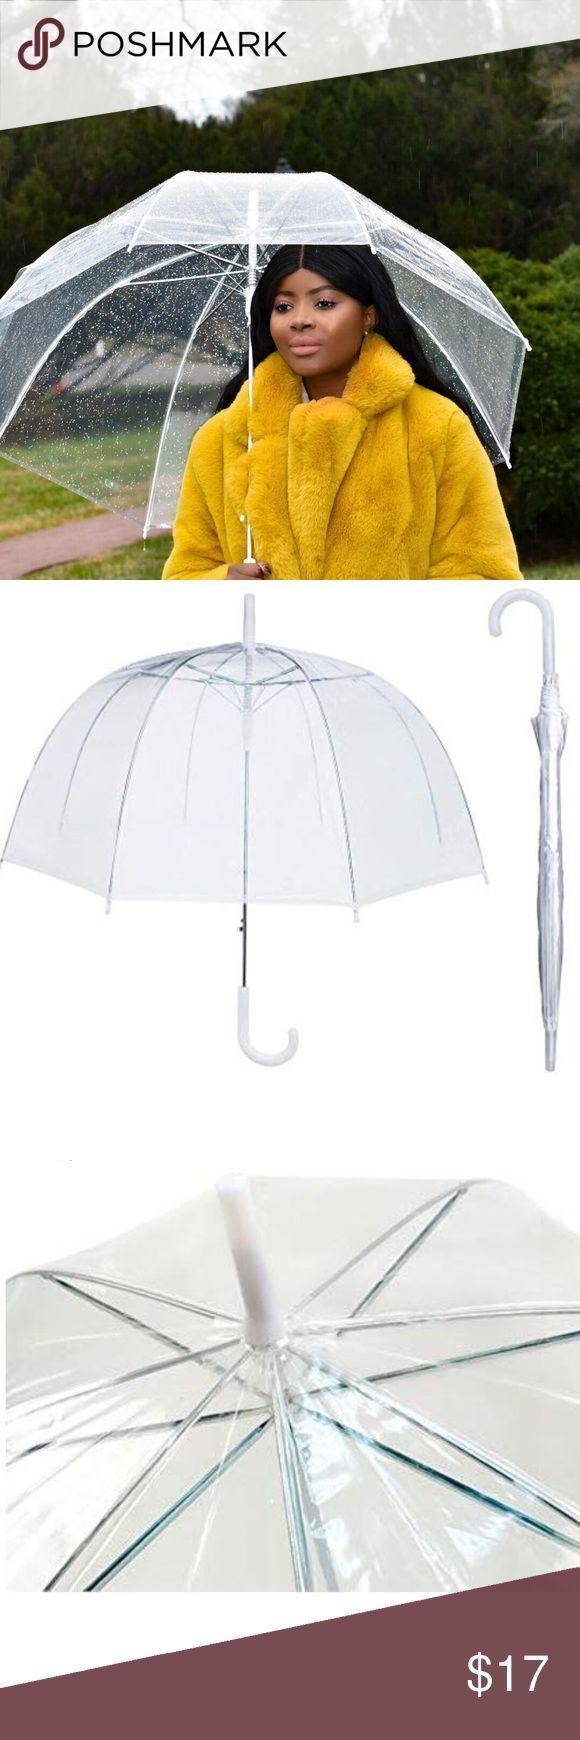 House Of Reign Clear Umbrella Big 47 Arch House Of Reign Clear Umbrella ... #clearumbrella House Of Reign Clear Umbrella Big 47 Arch House Of Reign Clear Umbrella ...  #clear #domehouse #house #reign #umbrella #clearumbrella